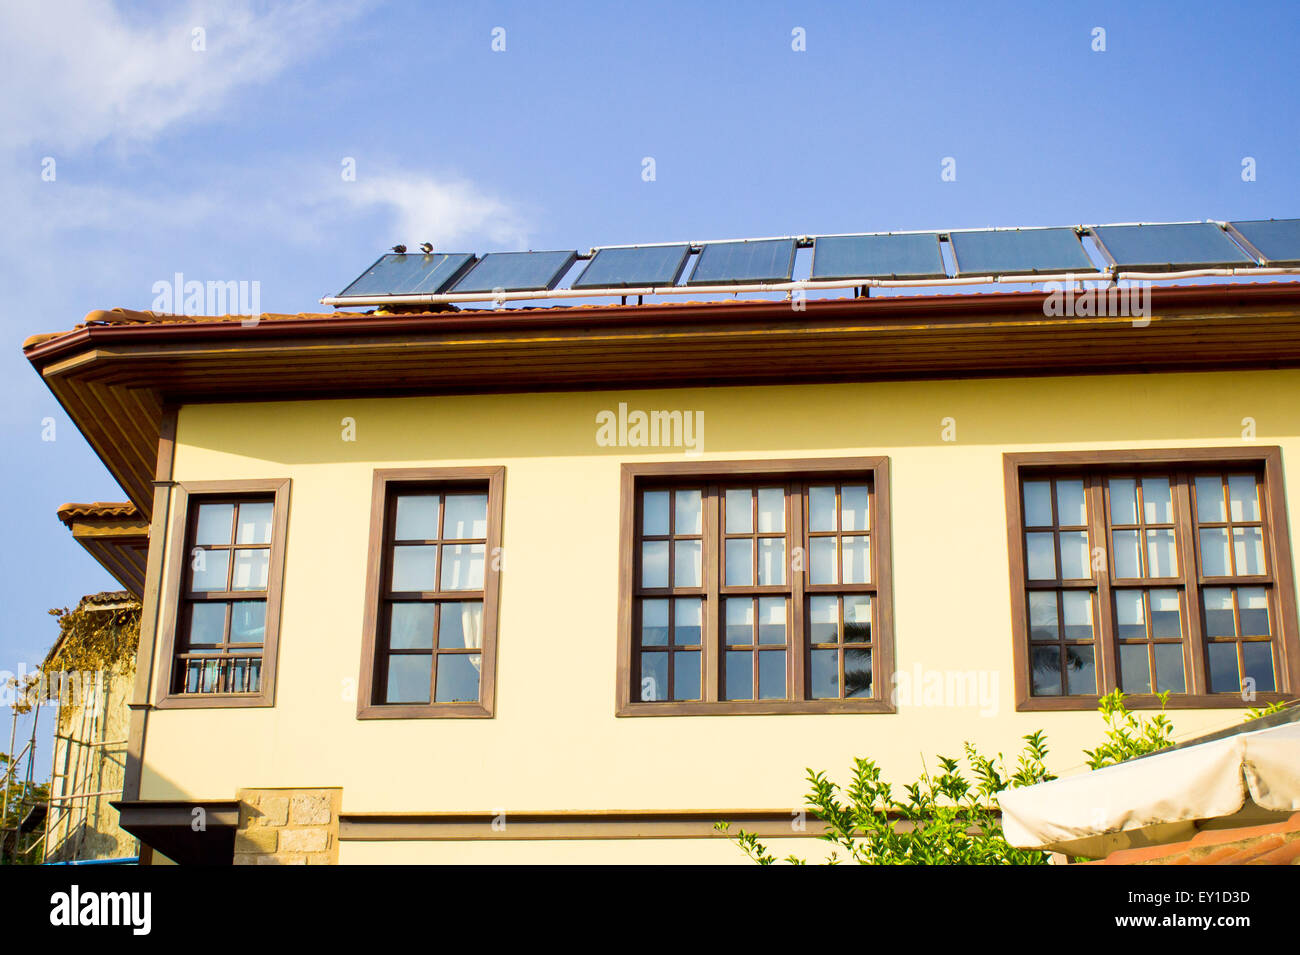 Modern solar panels on a traditional Ottoman style house in Turkey Stock Photo